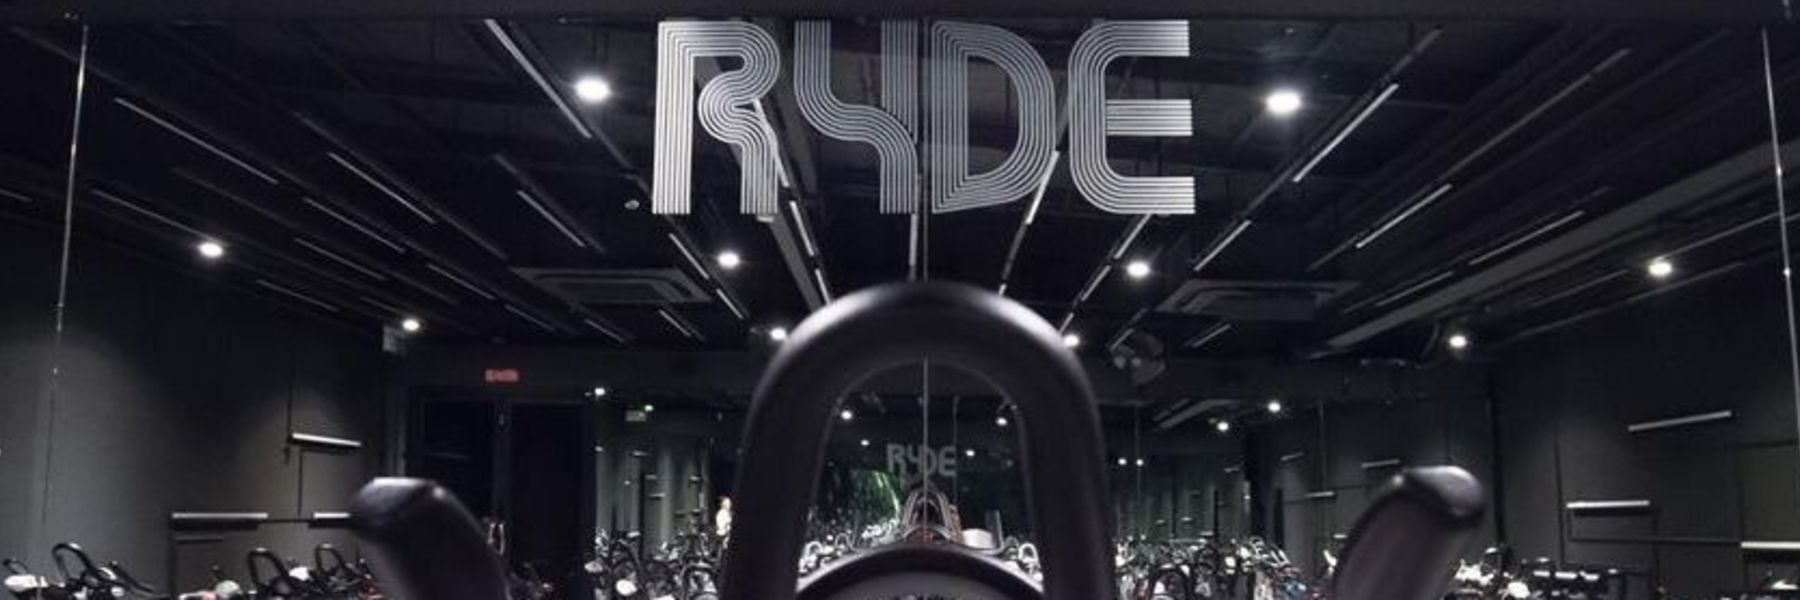 Ryde Cycle image